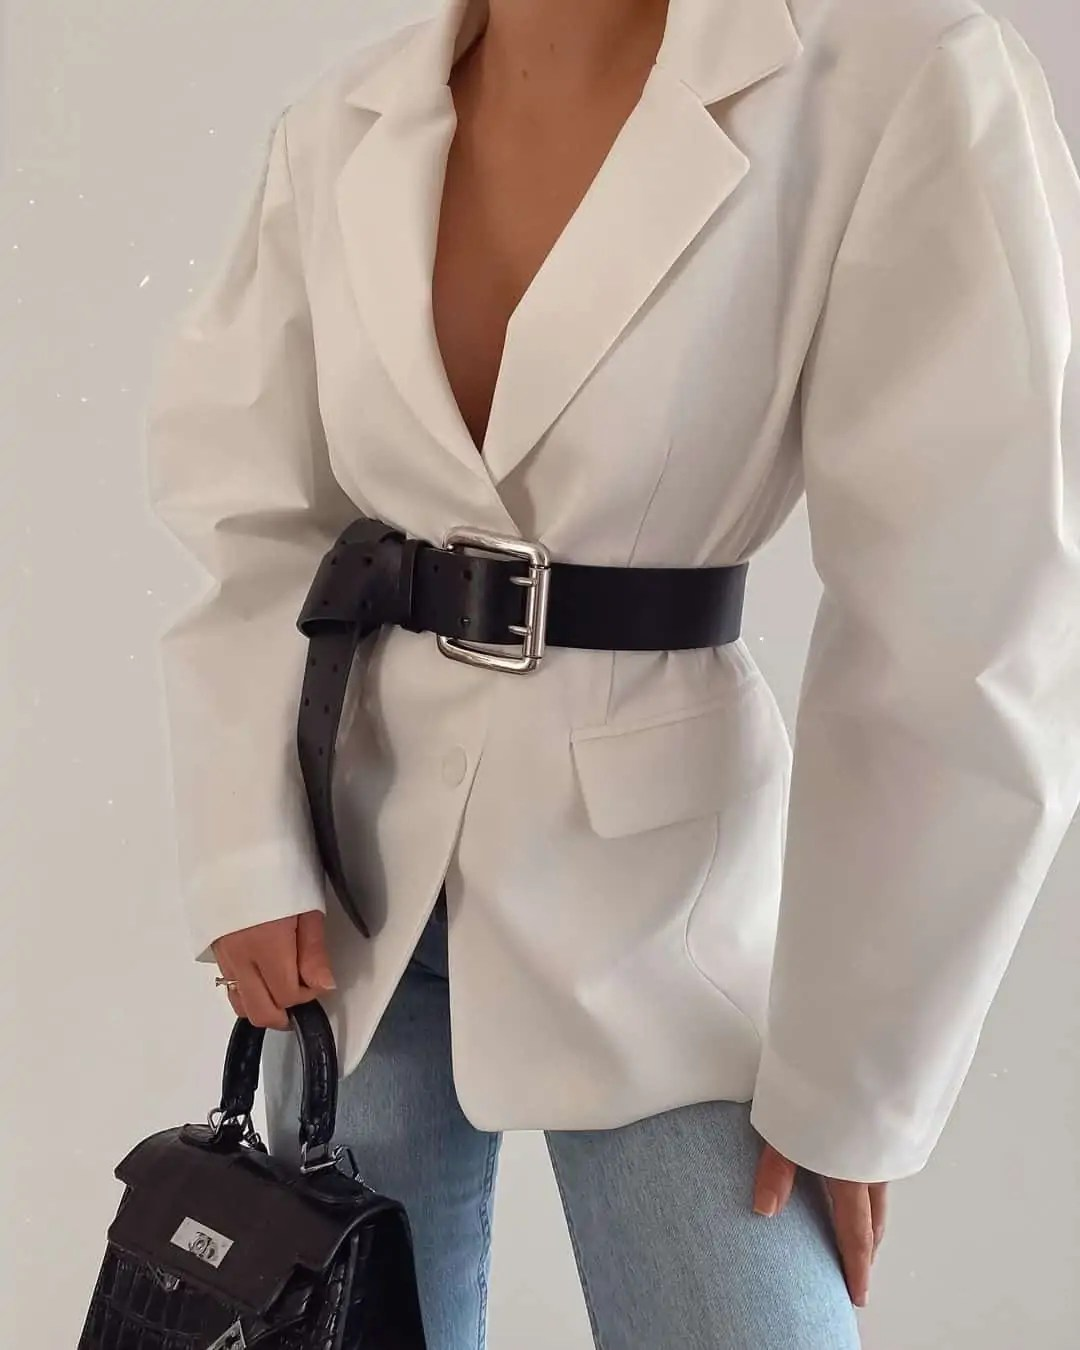 100+ Outfits to Inspire your next shopping haul 191